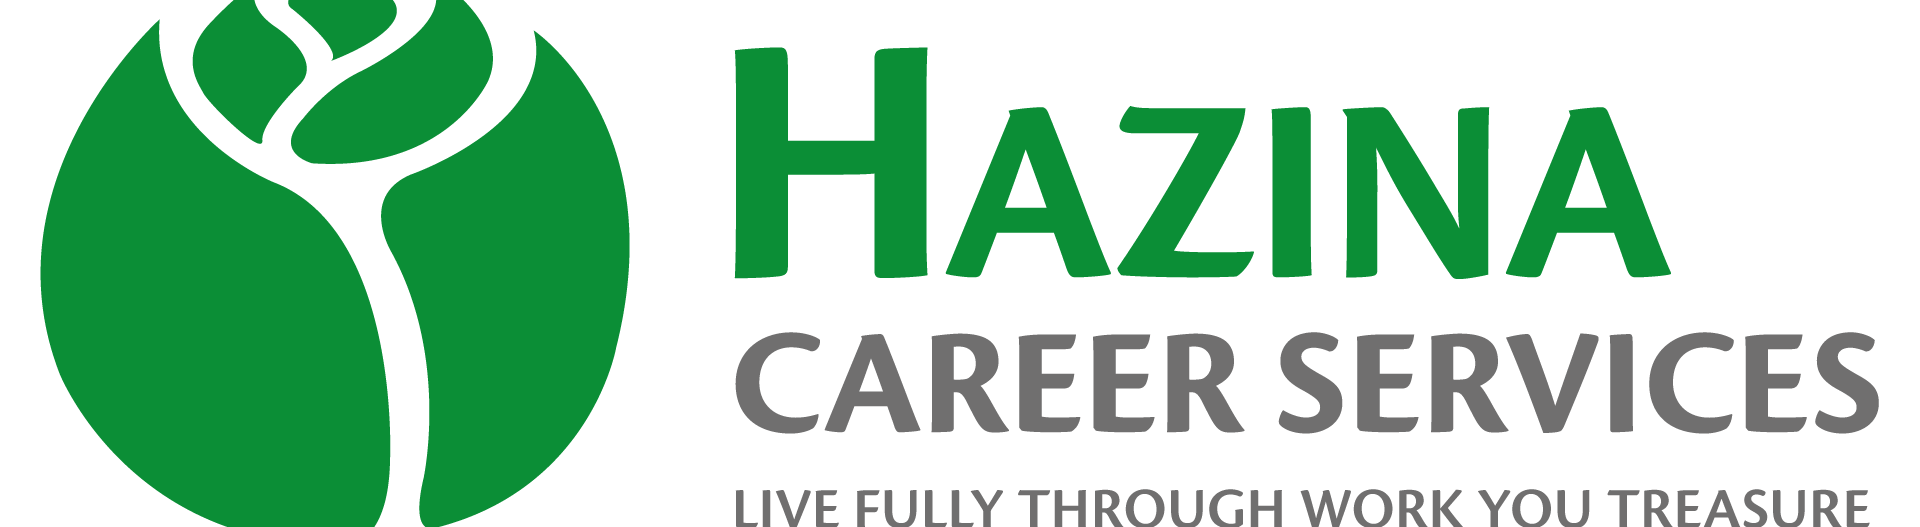 Hazina Career Services